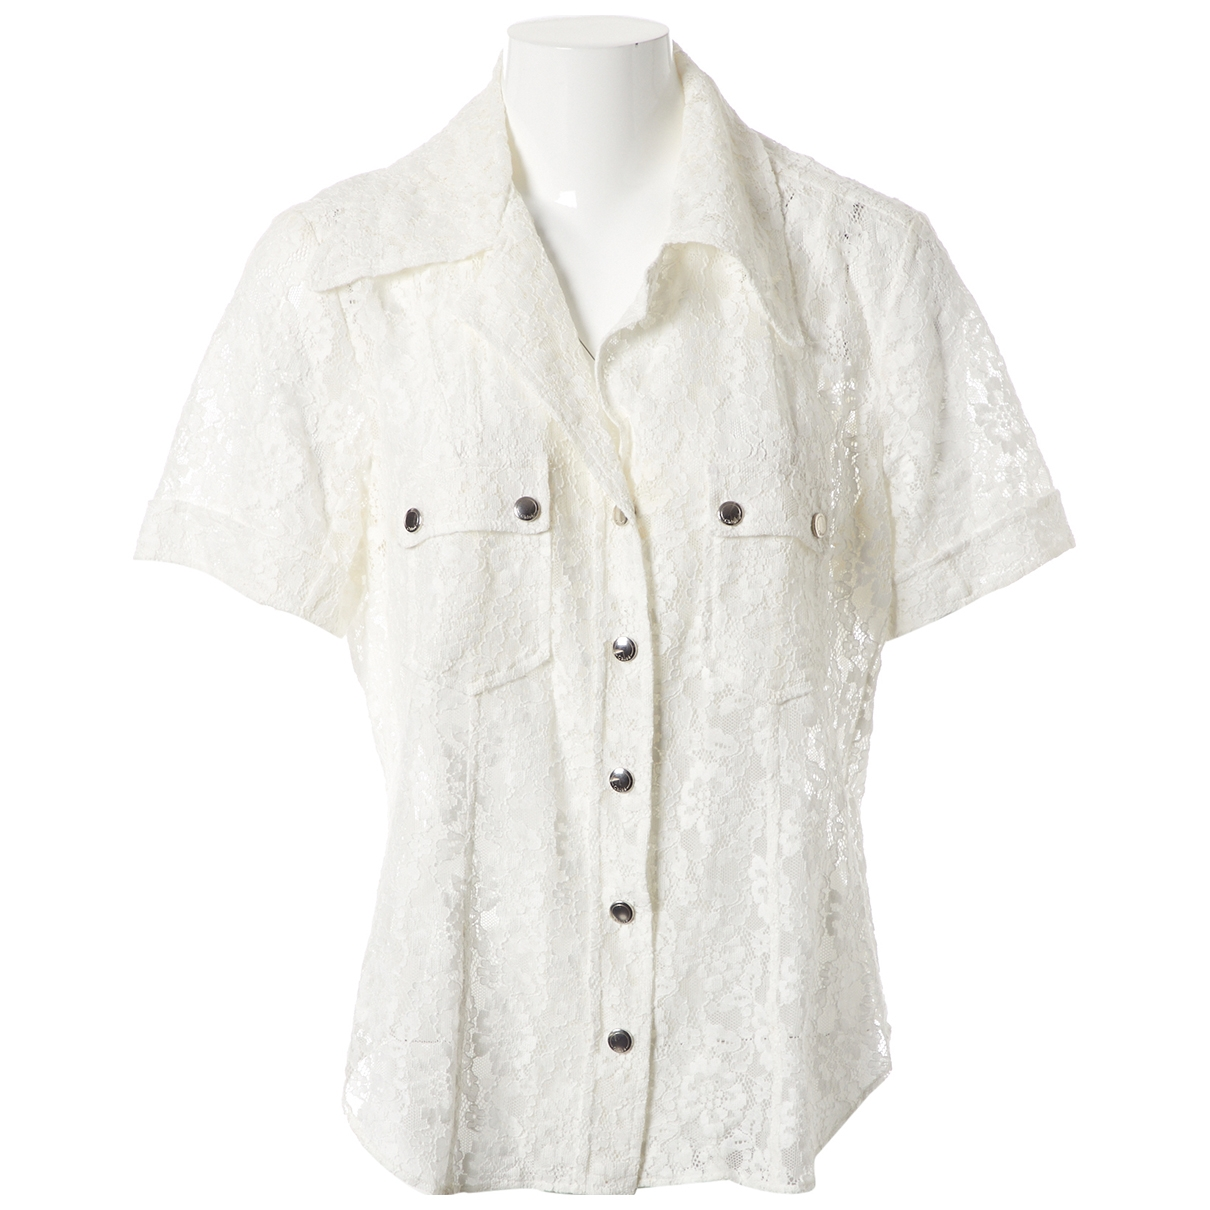 Chloé \N White Lace  top for Women 42 FR